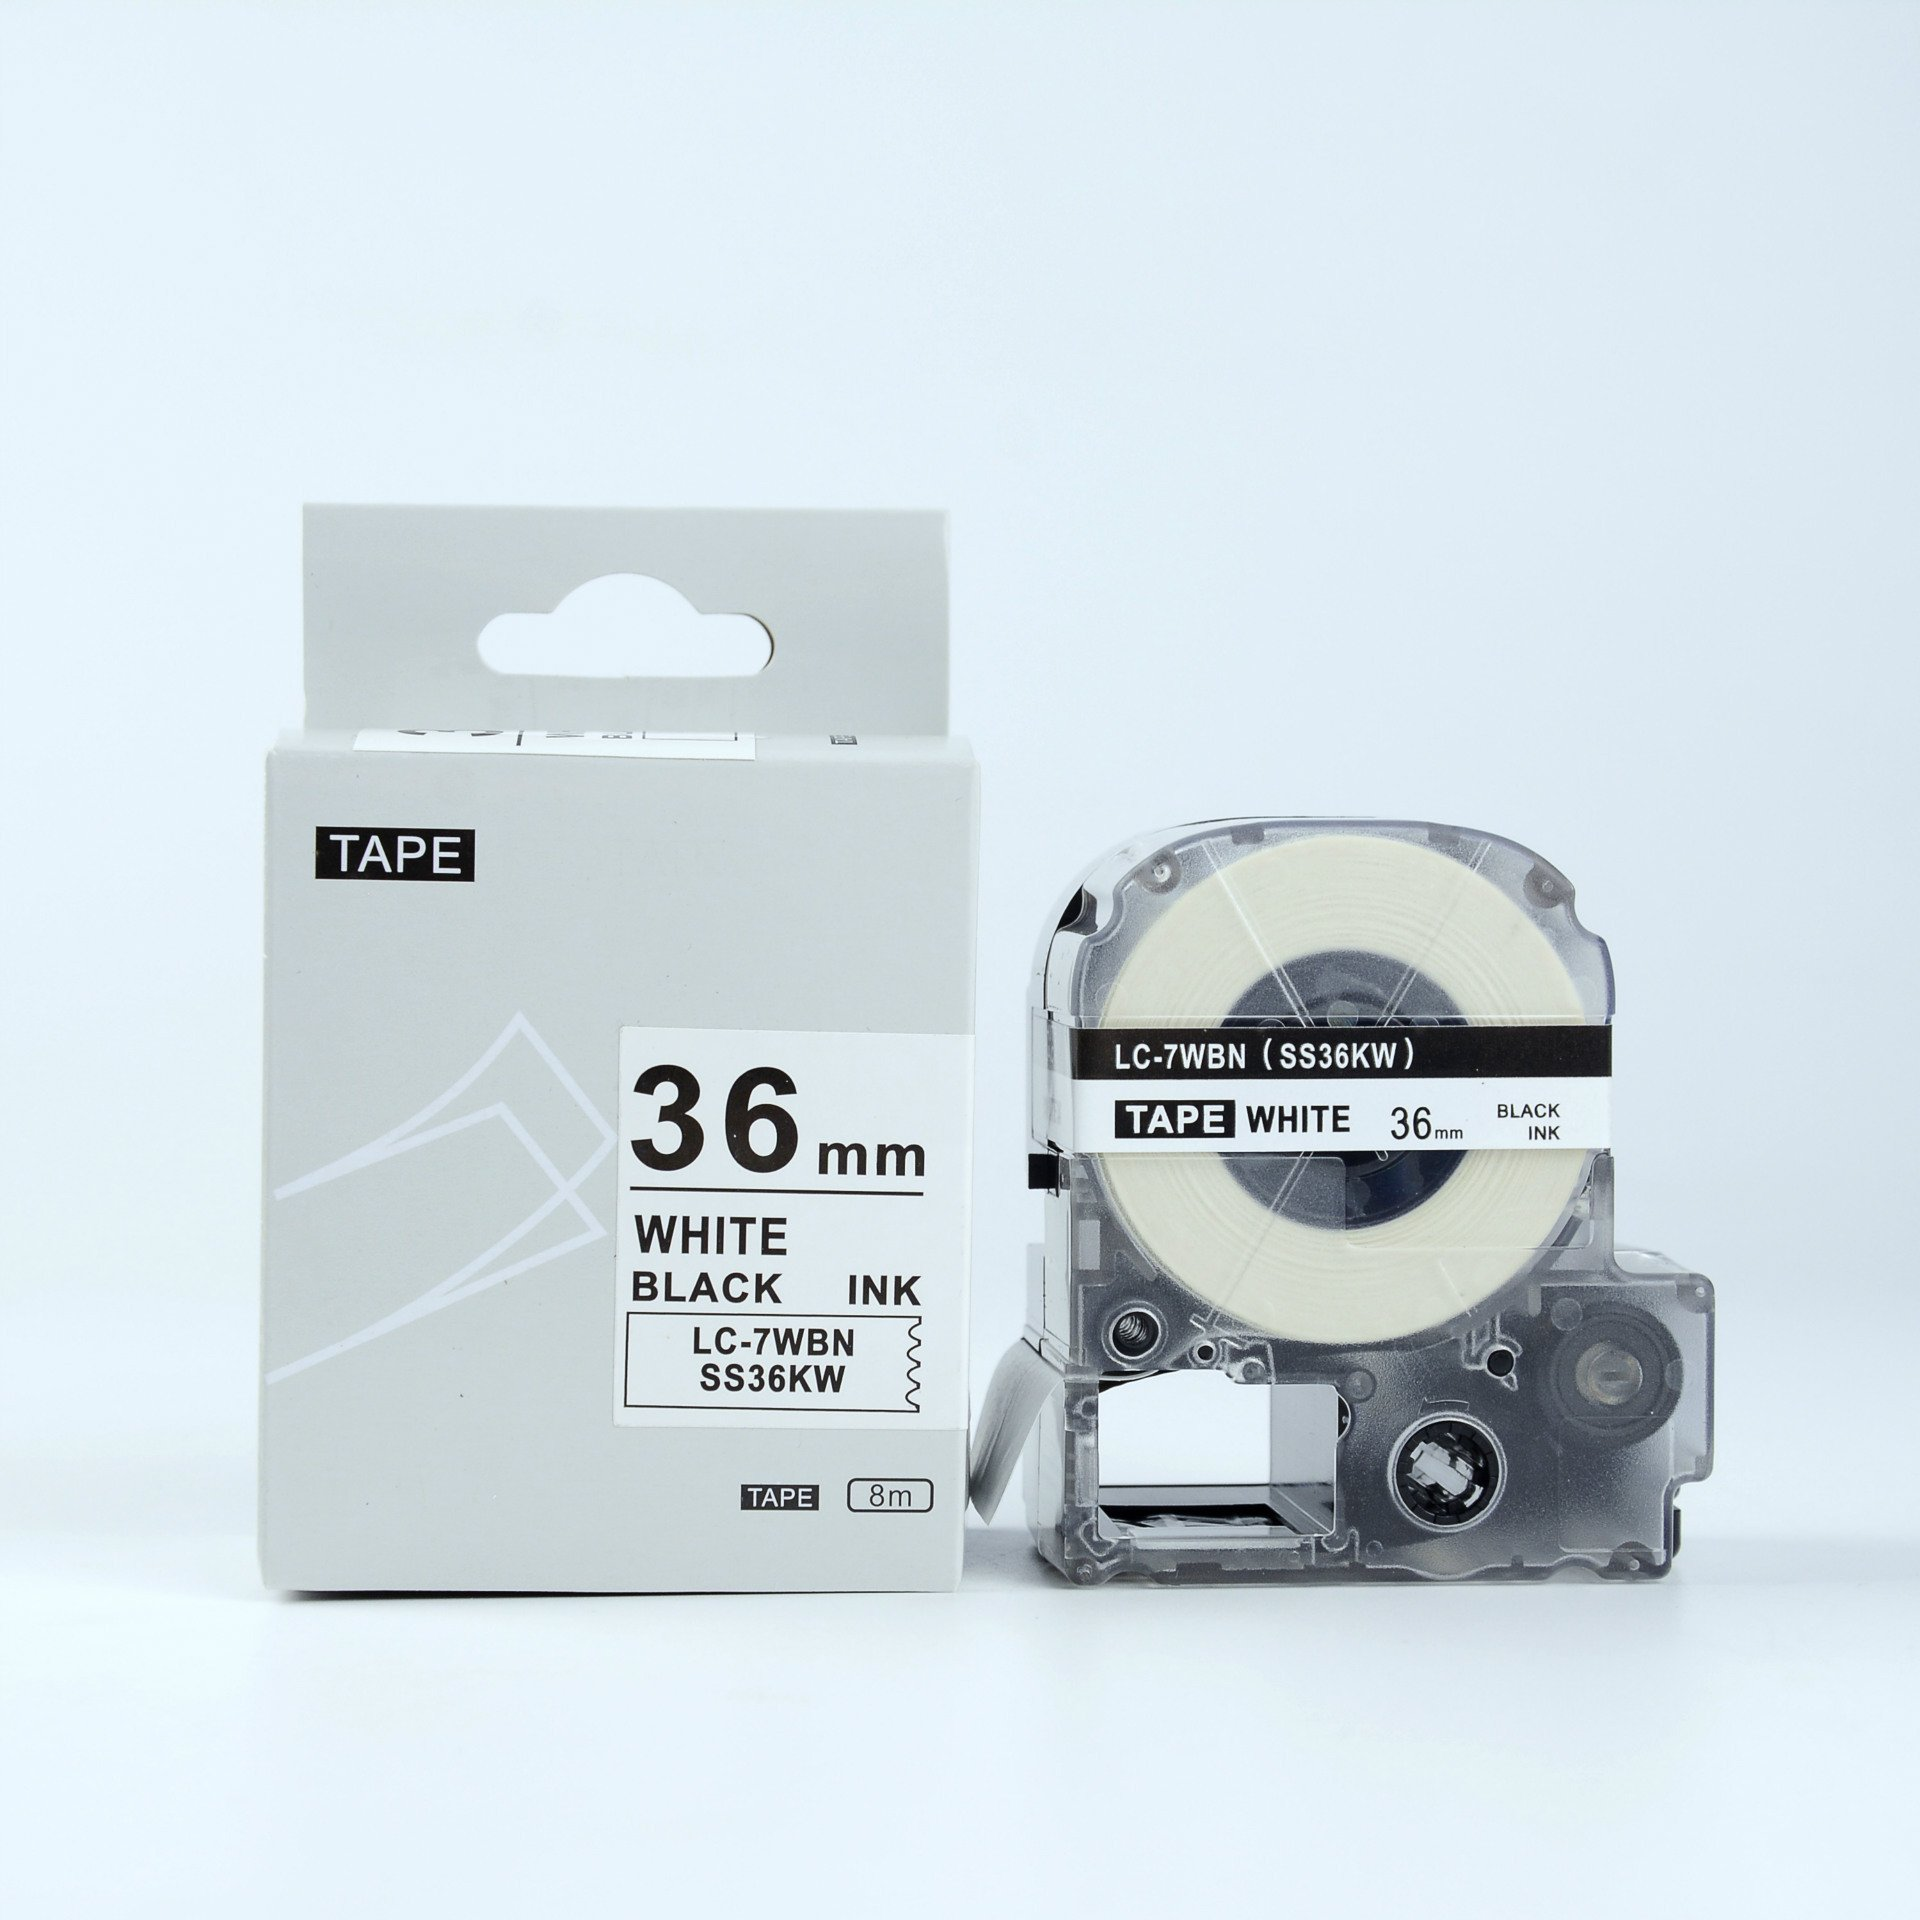 Compatible EPSON36mm LC-7WBN Label Tape Black on white 36mm 8m LW Serial Labe by Sumei Label (Image #1)